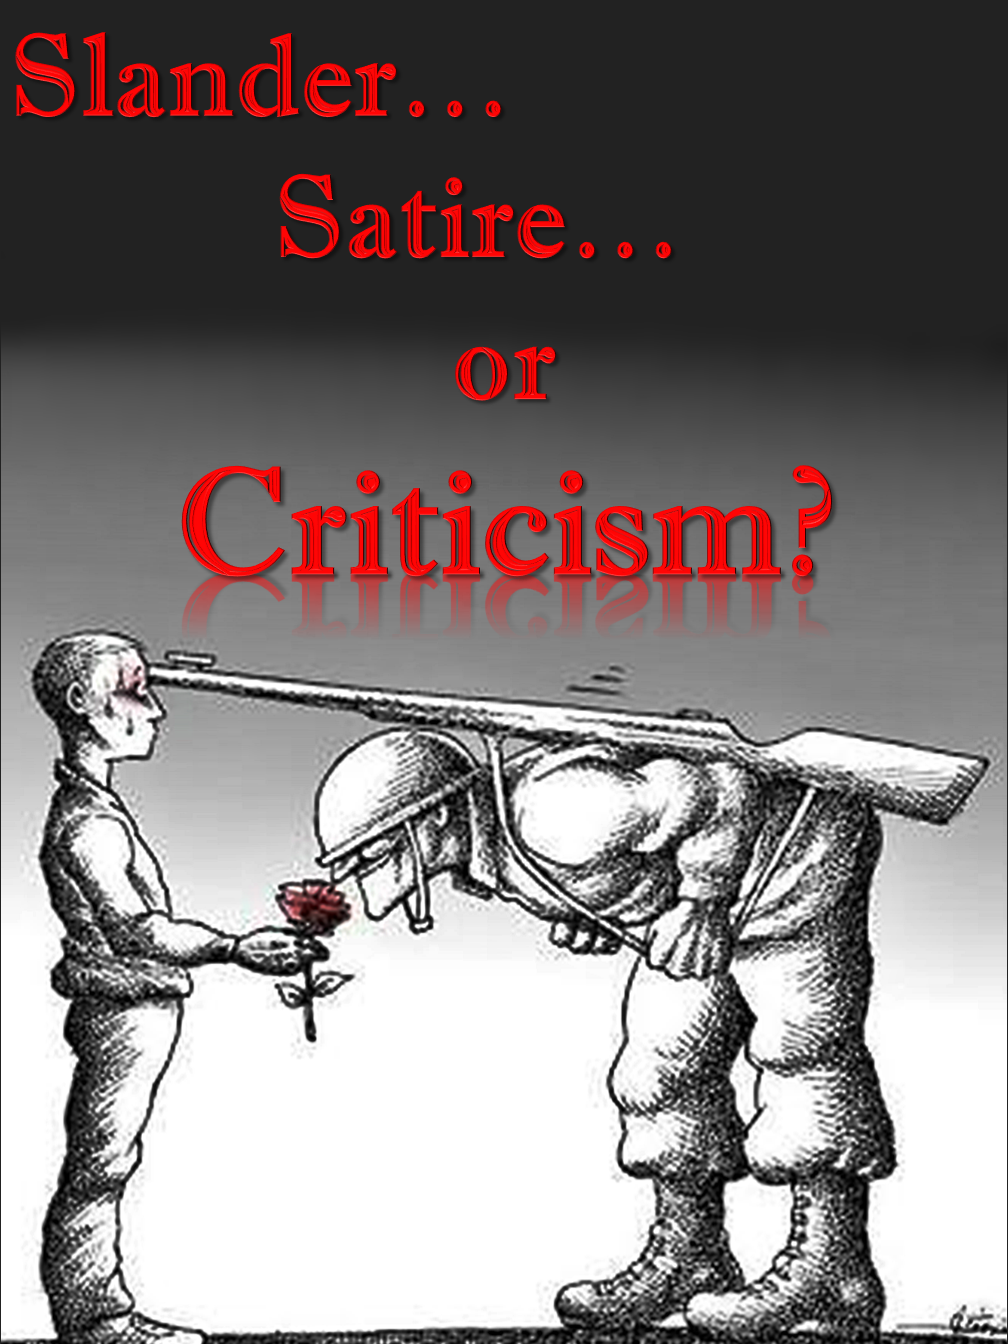 Slander, Satire, Criticism...